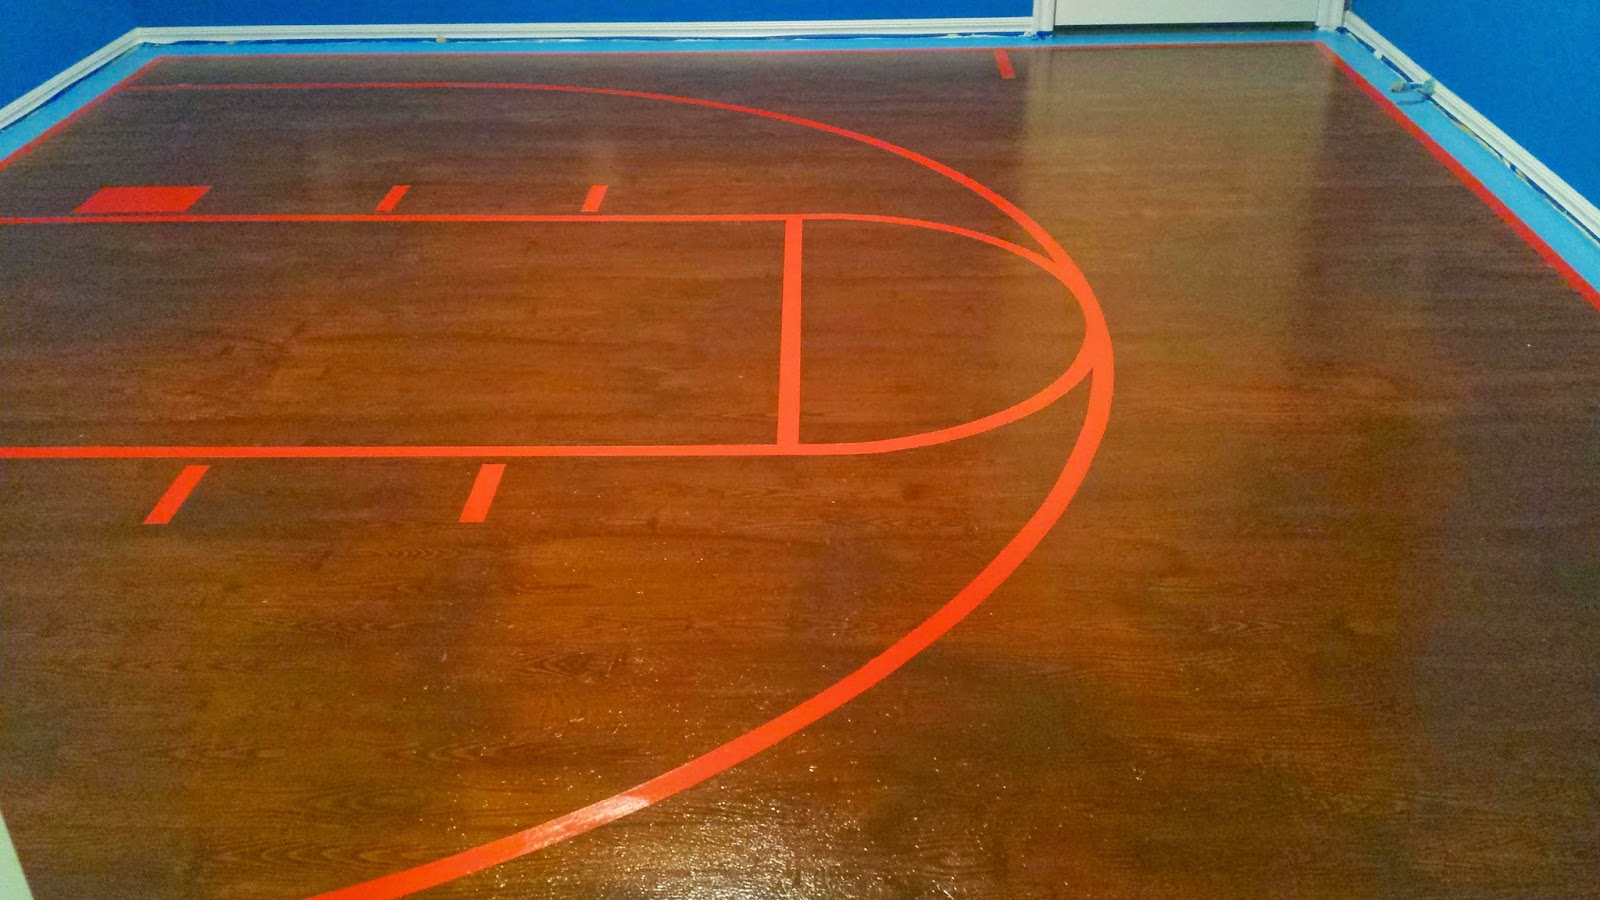 Basketball Court Lines on Painted Plywood Floor, Lower Angle